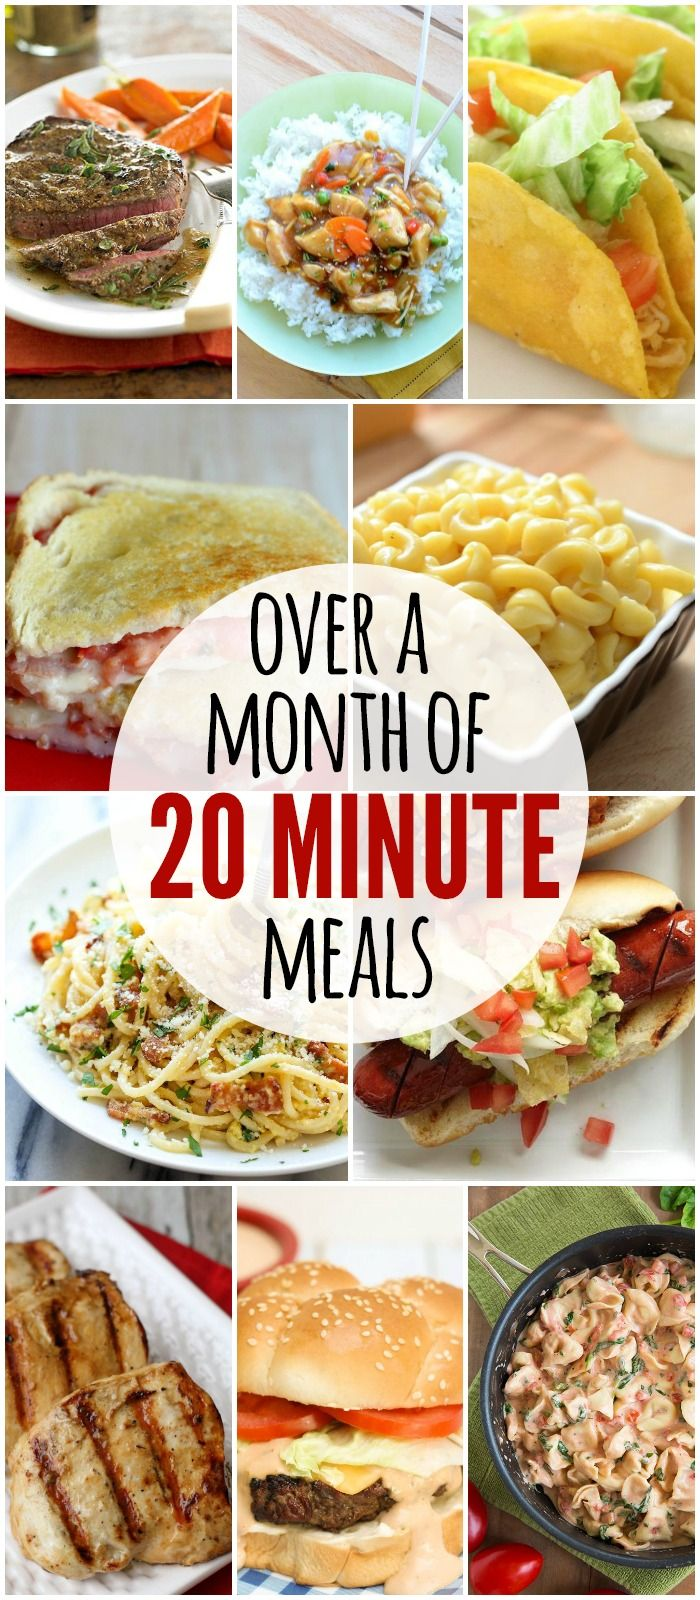 Over A Month Worth Of Meals That Only Take 20 Minutes Or Less To Prepare